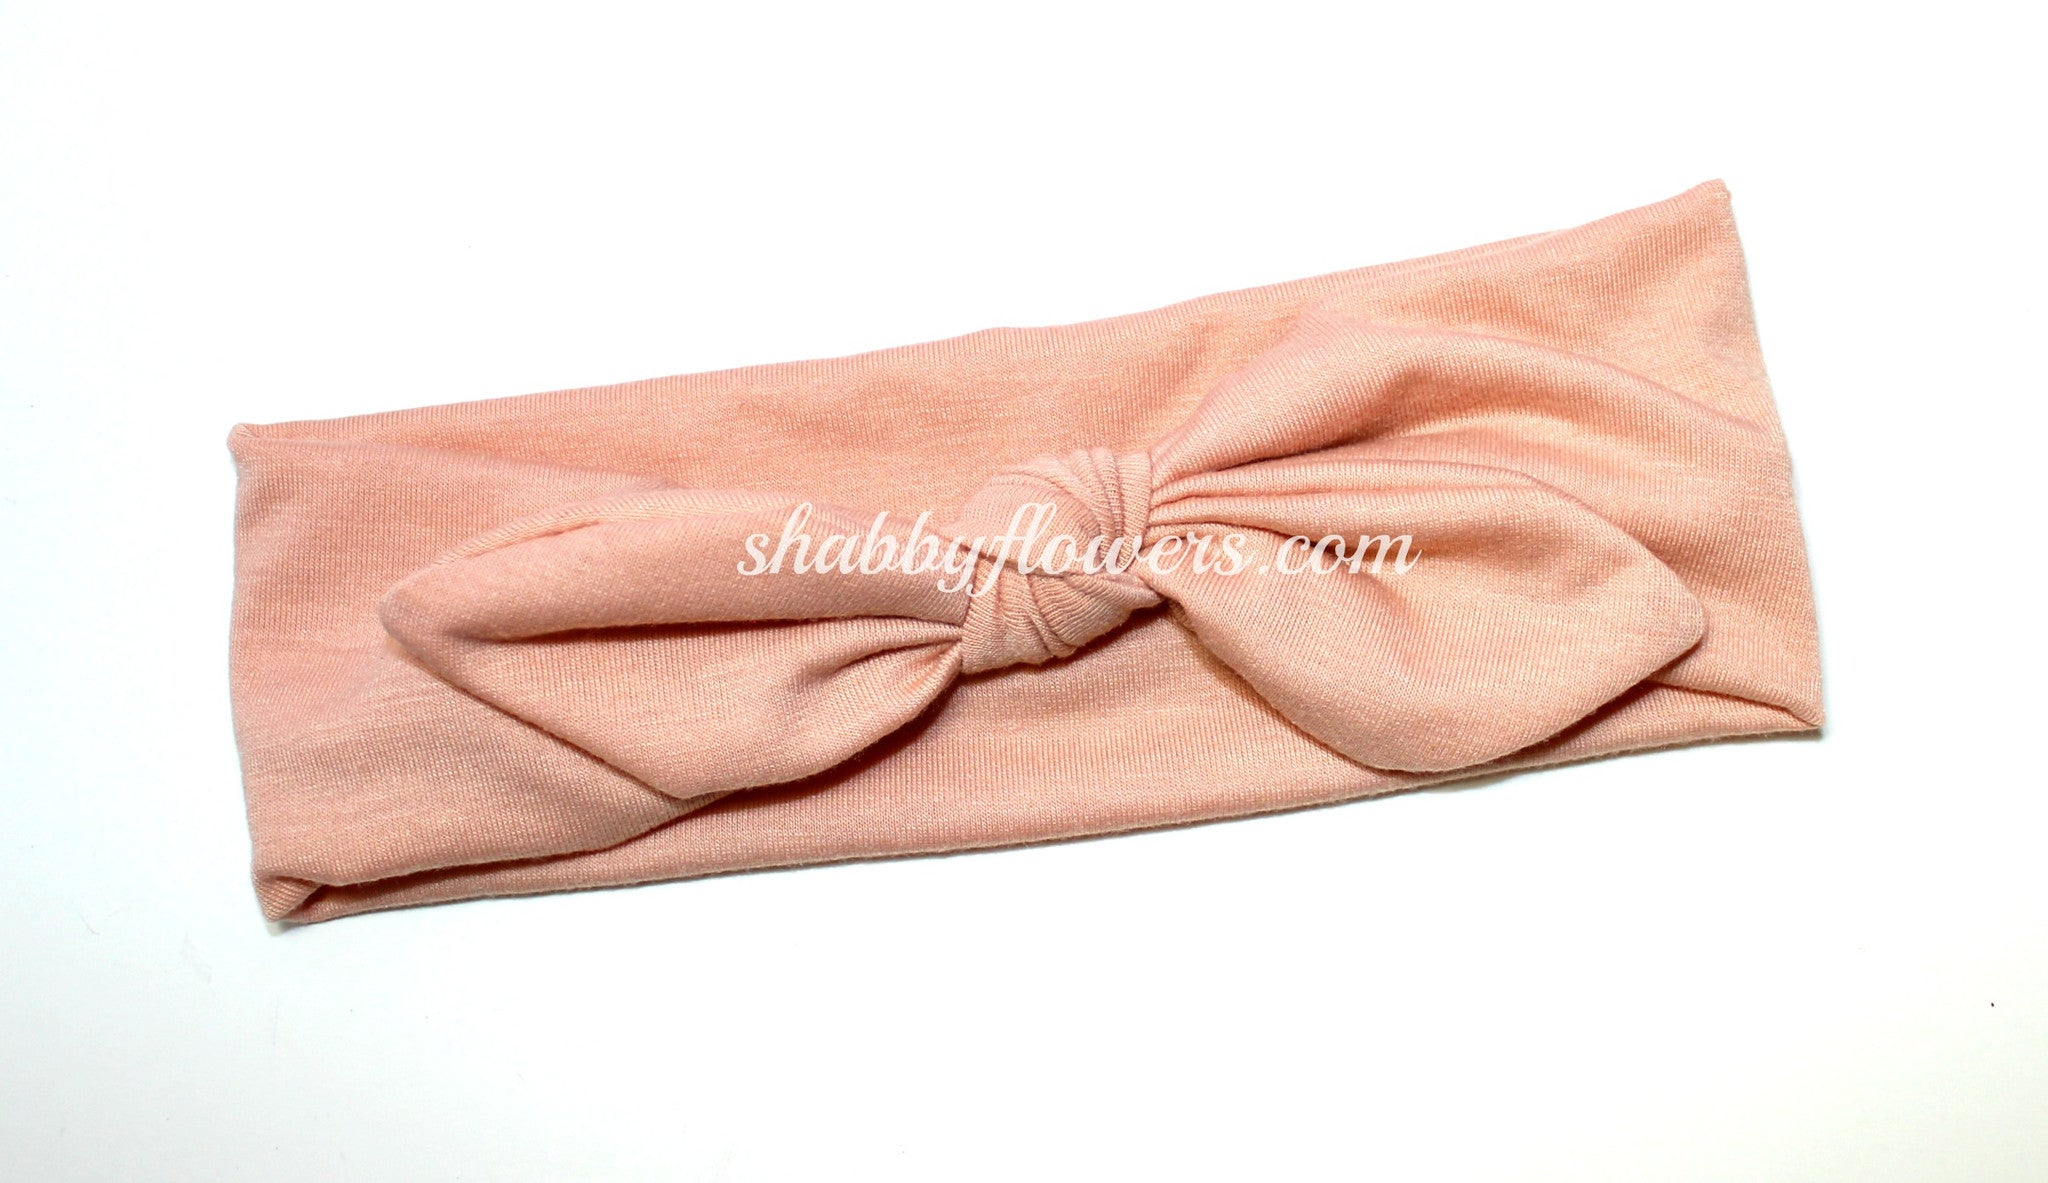 Knot Headband in Pink Blush - Regular - shabbyflowers.com